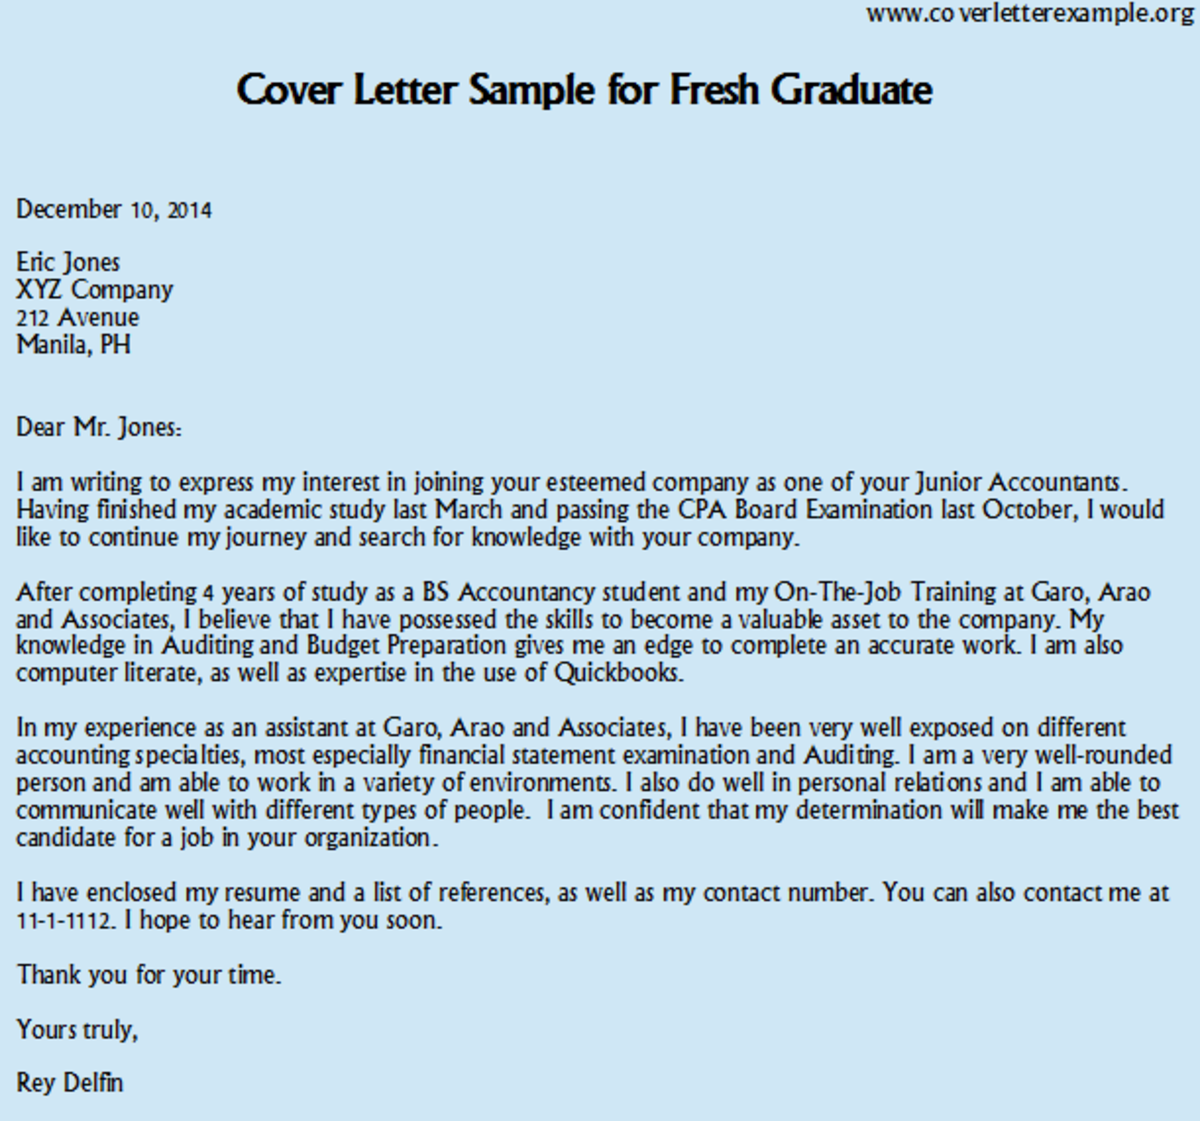 unsolicited application letter of an accountant You can save the document example resume for job application format with unsolicited application letter sample accountant an essay on the above by right clicking on the image and save image.